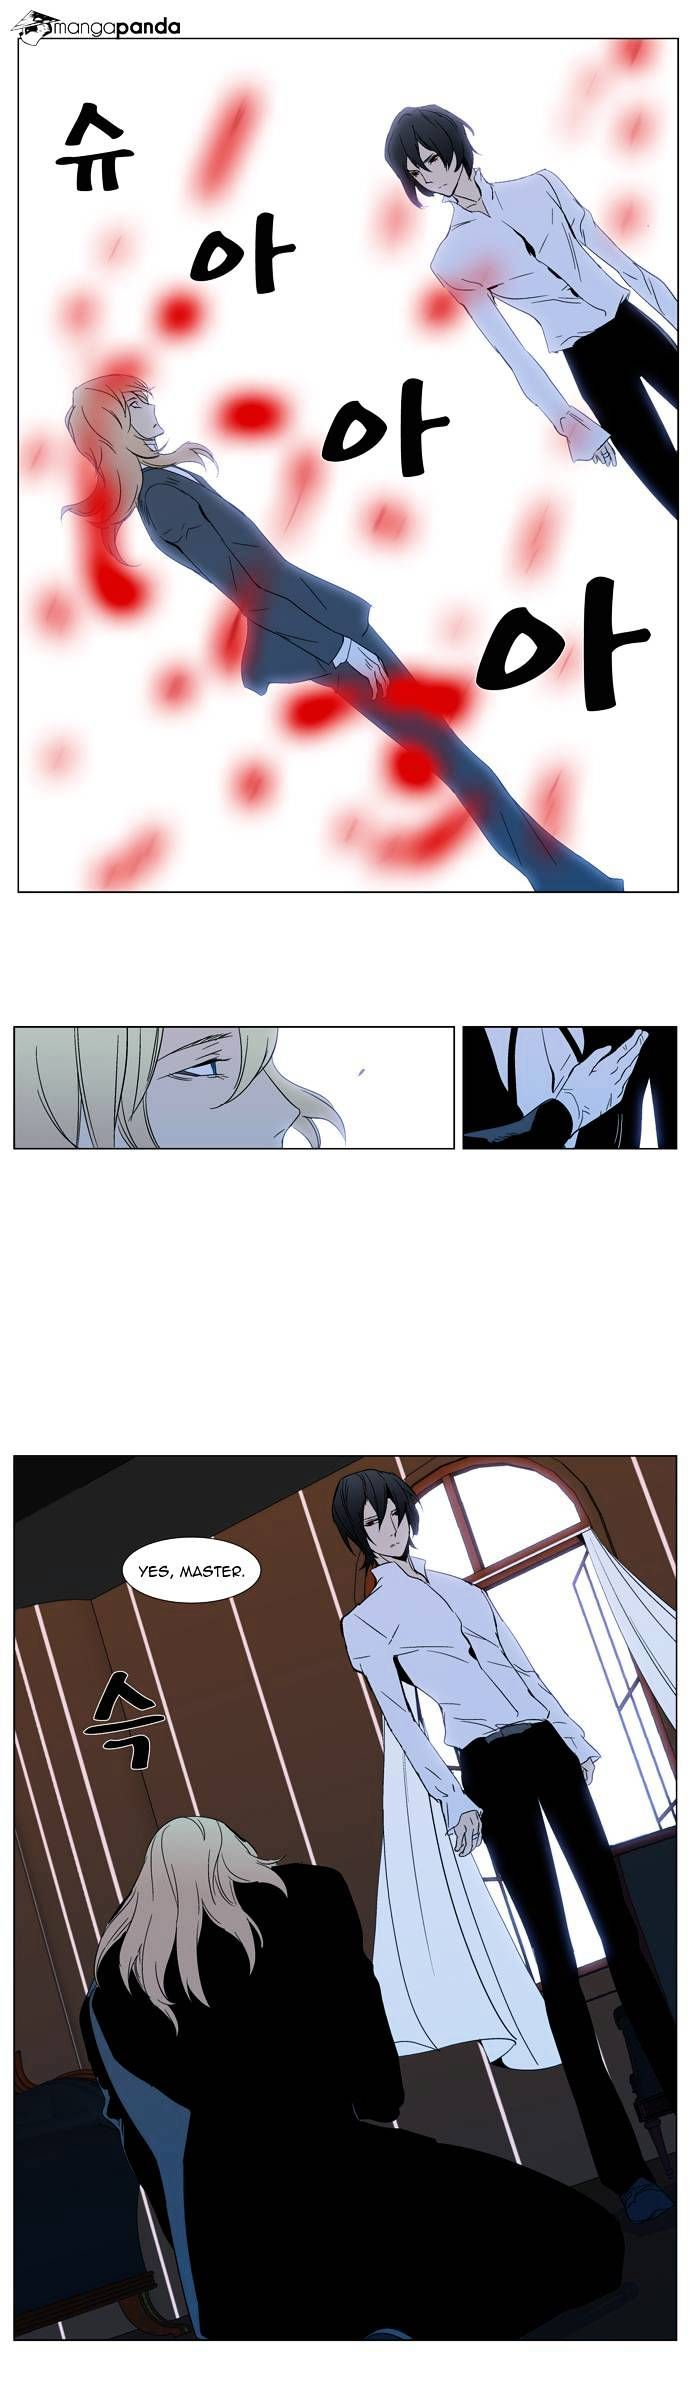 Noblesse 295 - Read Noblesse ch.295 Online For Free - Stream 3 Edition 1 Page All - MangaPark